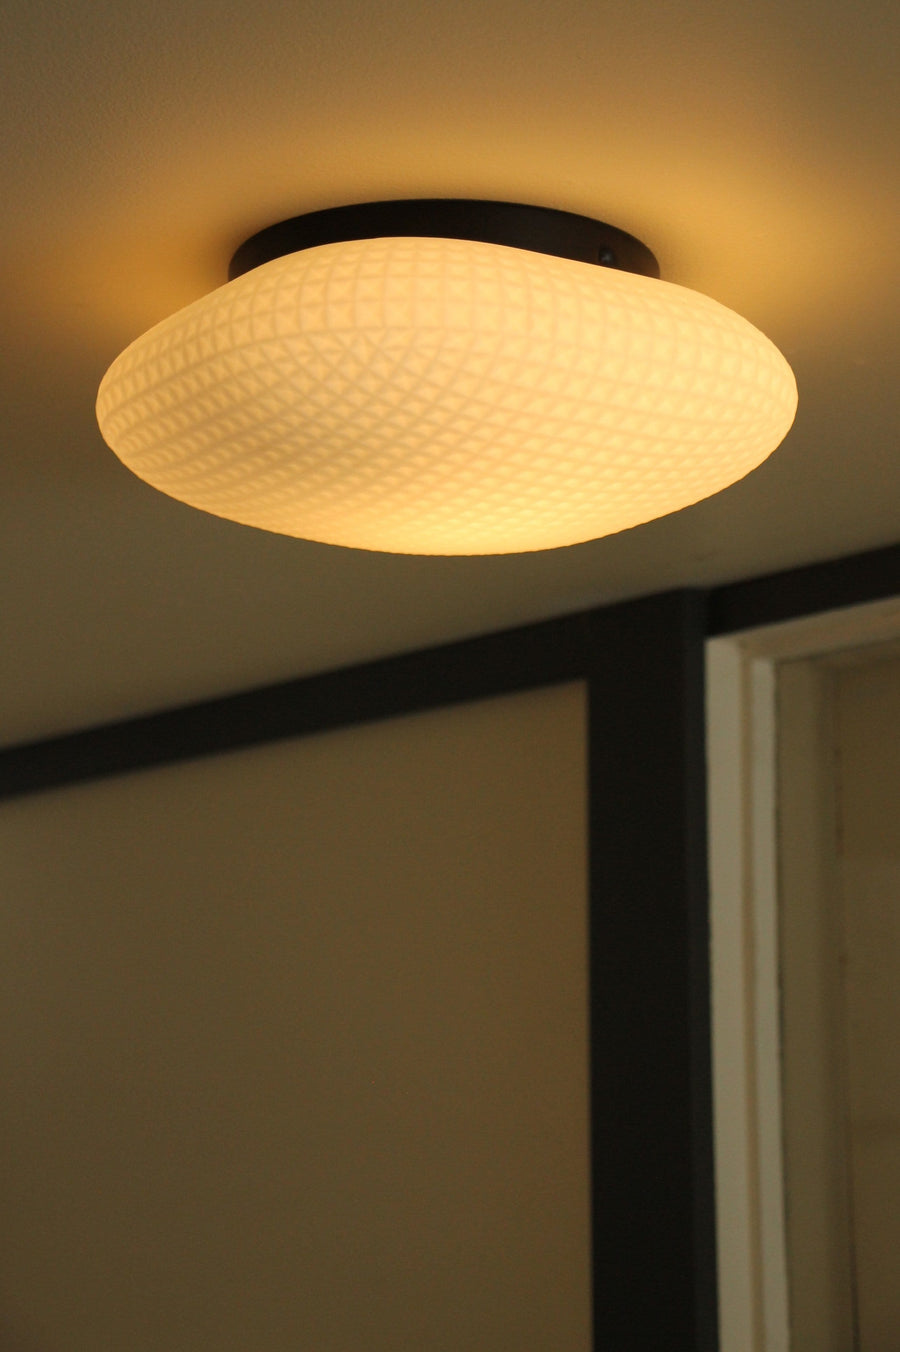 Oyster style ceiling light is the perfect fitting for an ensuite bathroom or powder room